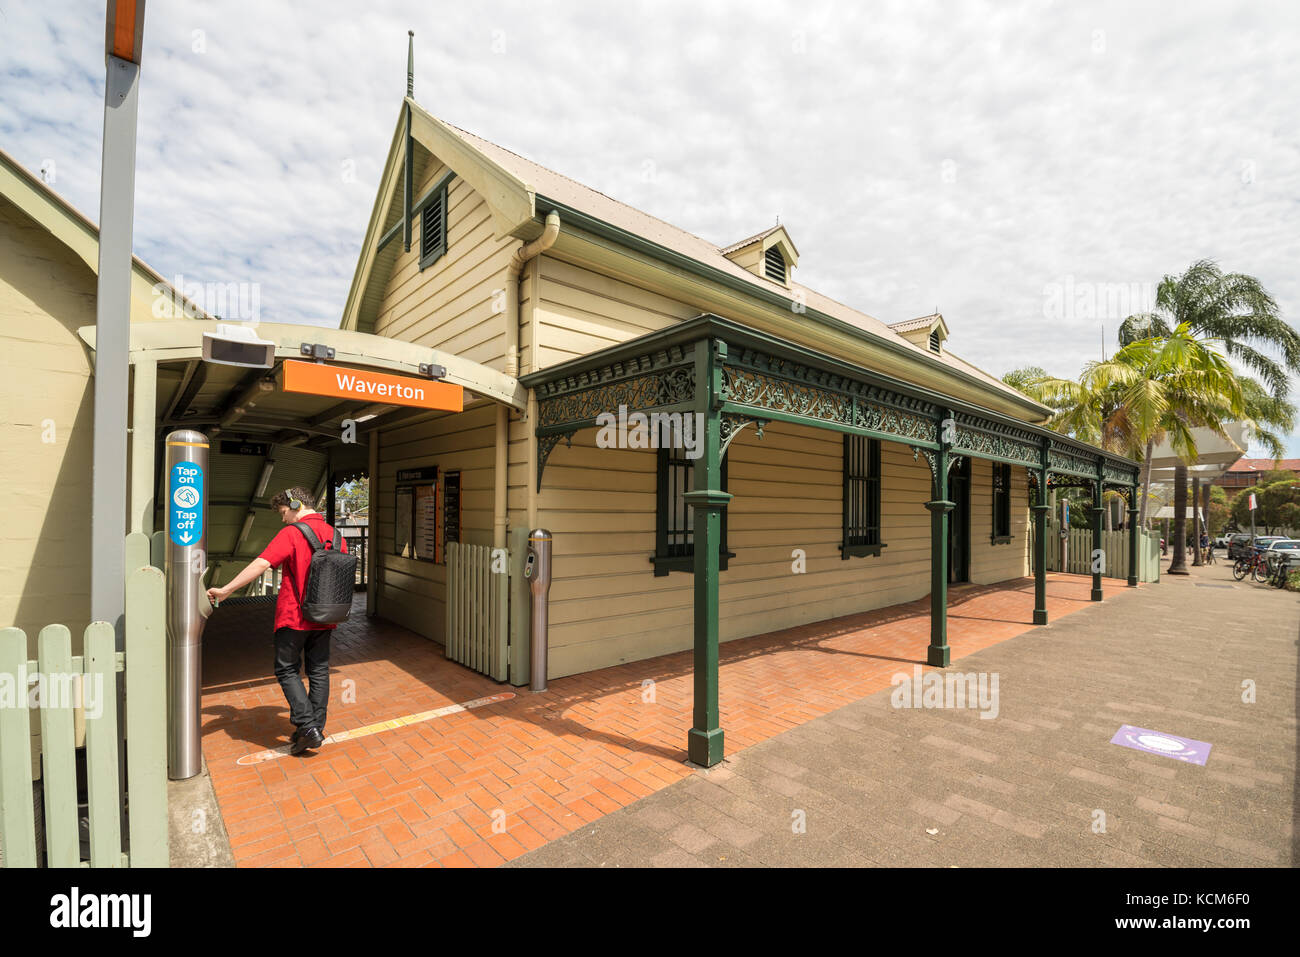 how to go to watson bay sydney from museum station